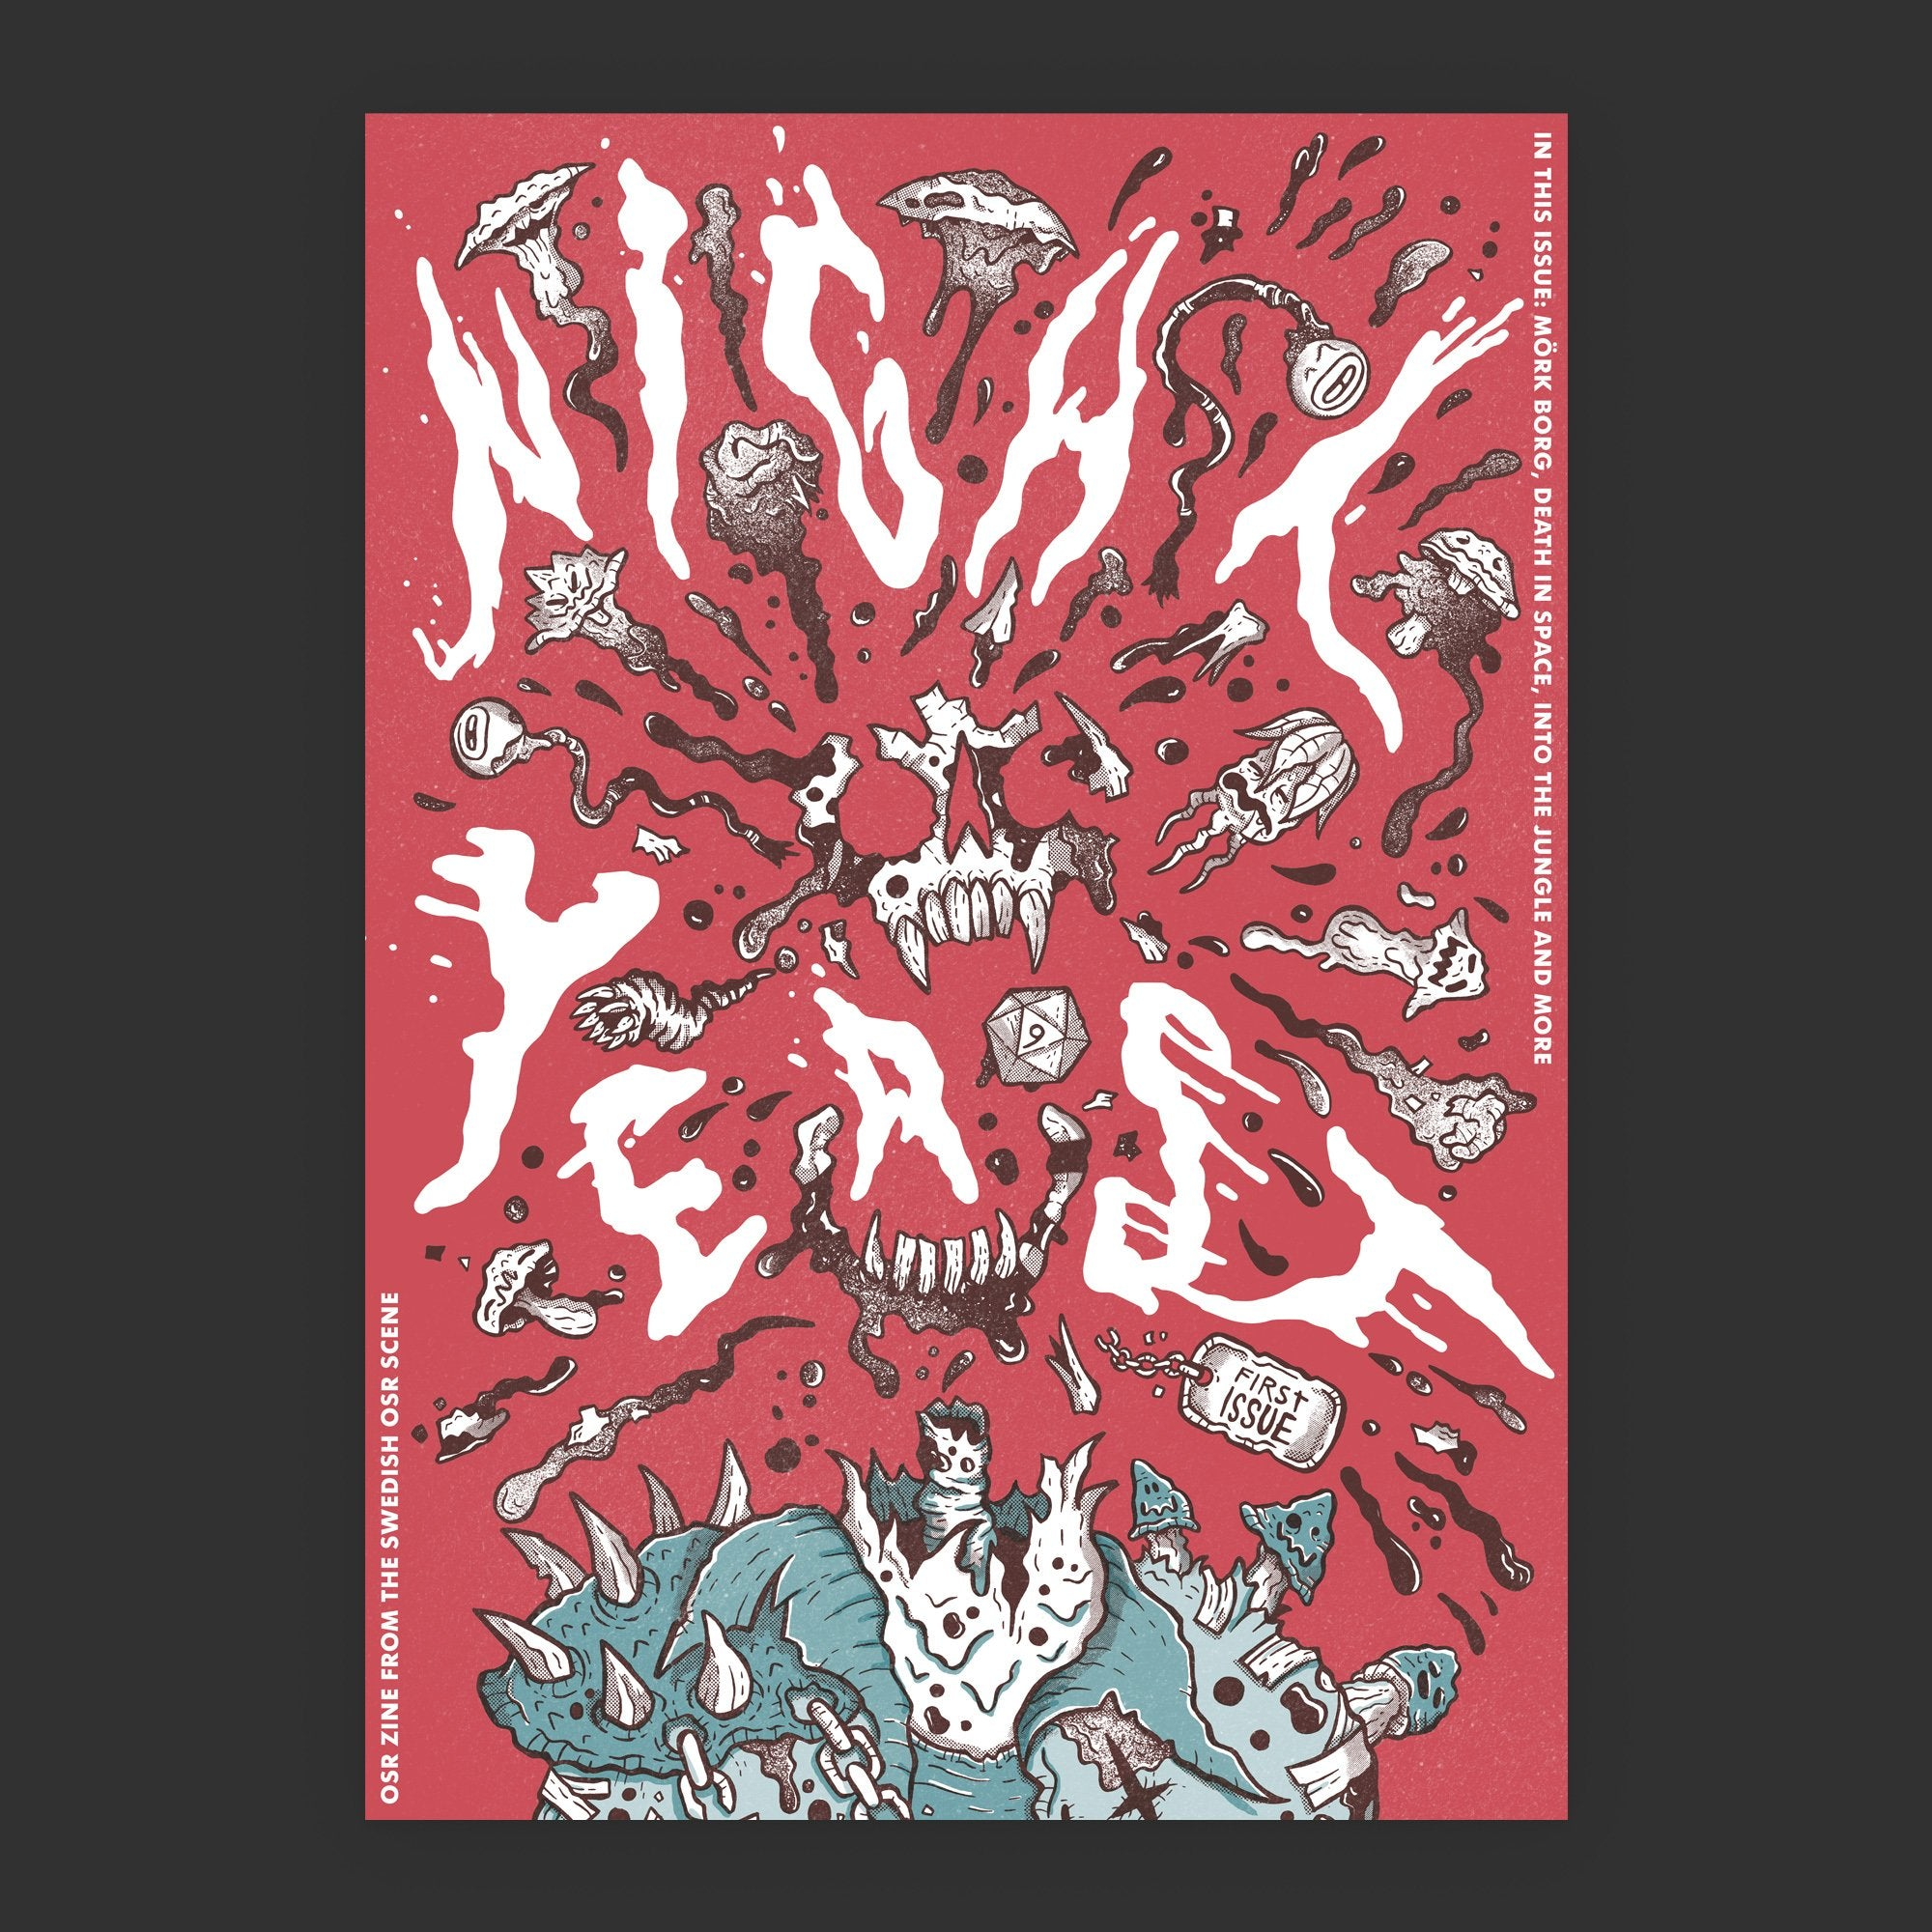 Night Yeast an OSR Zine from the Sweidsh OSR Scene, Mork Borg, Death in Space, Into the Jungle, and more. Cover by skullfungus. Risograph 1st issue